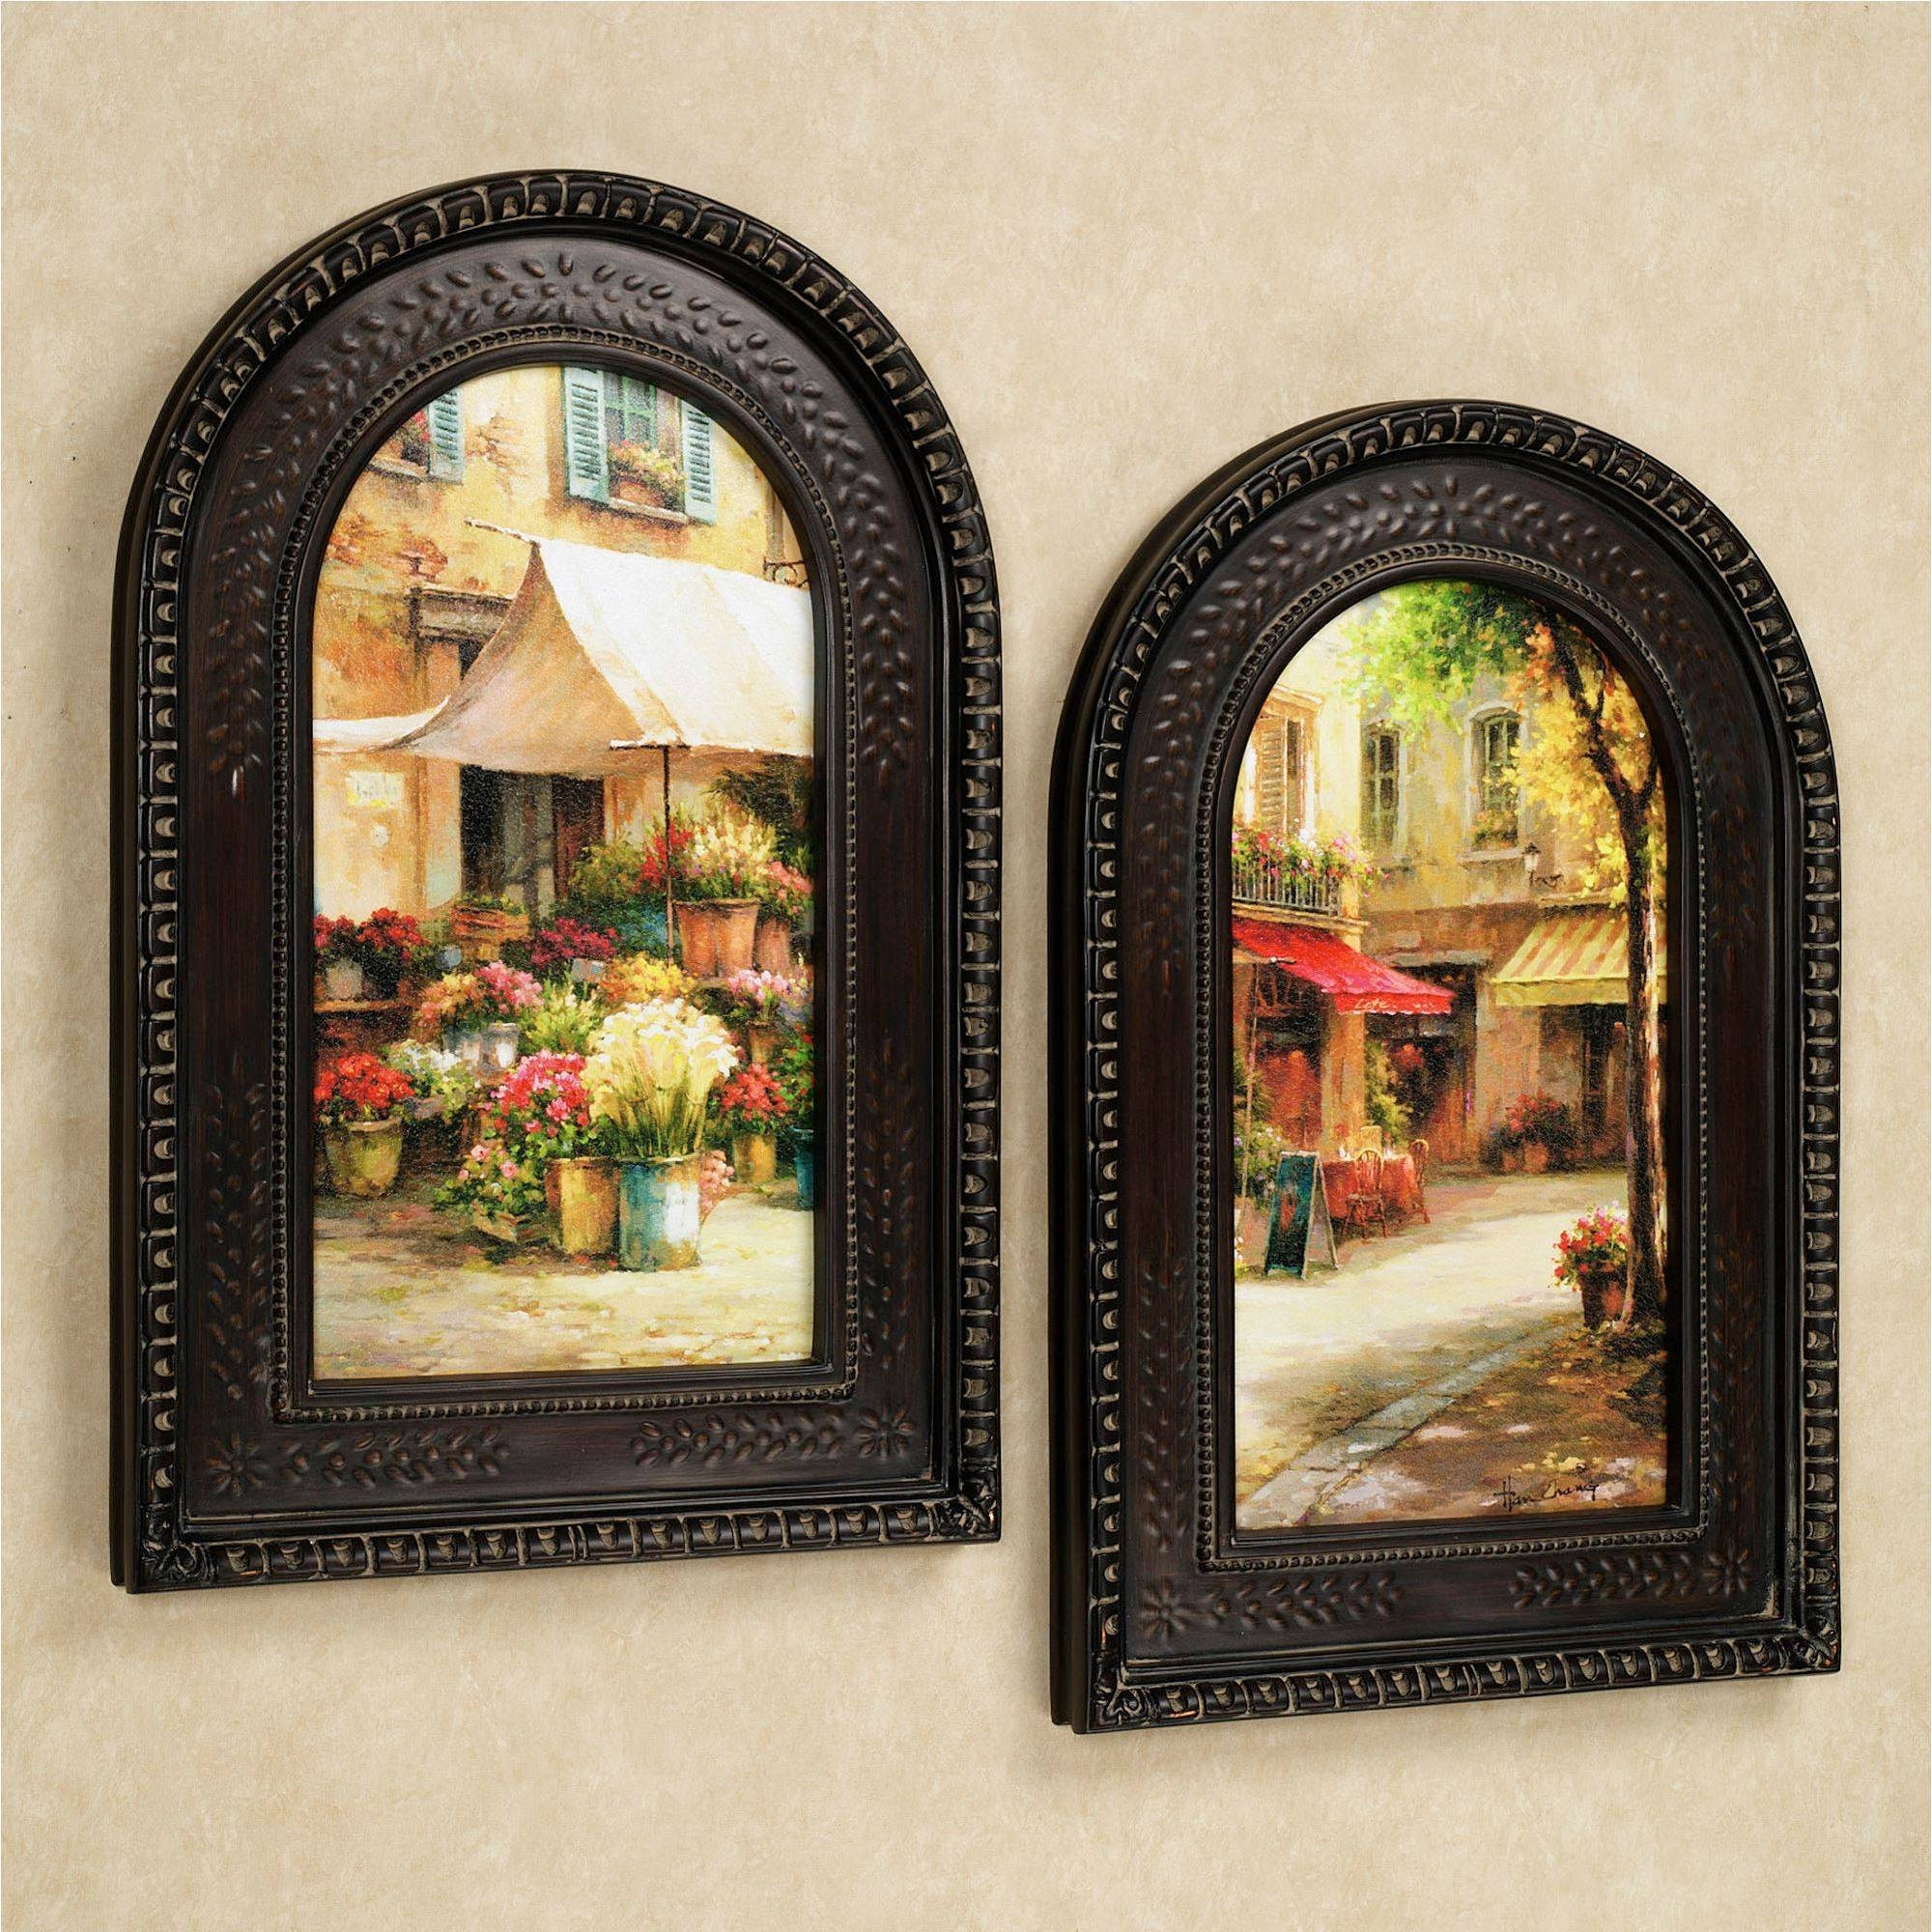 Remarkable Decoration Framed Wall Art Sets Exclusive Ideas Wall In Most Current Cheap Wall Art Sets (View 14 of 20)